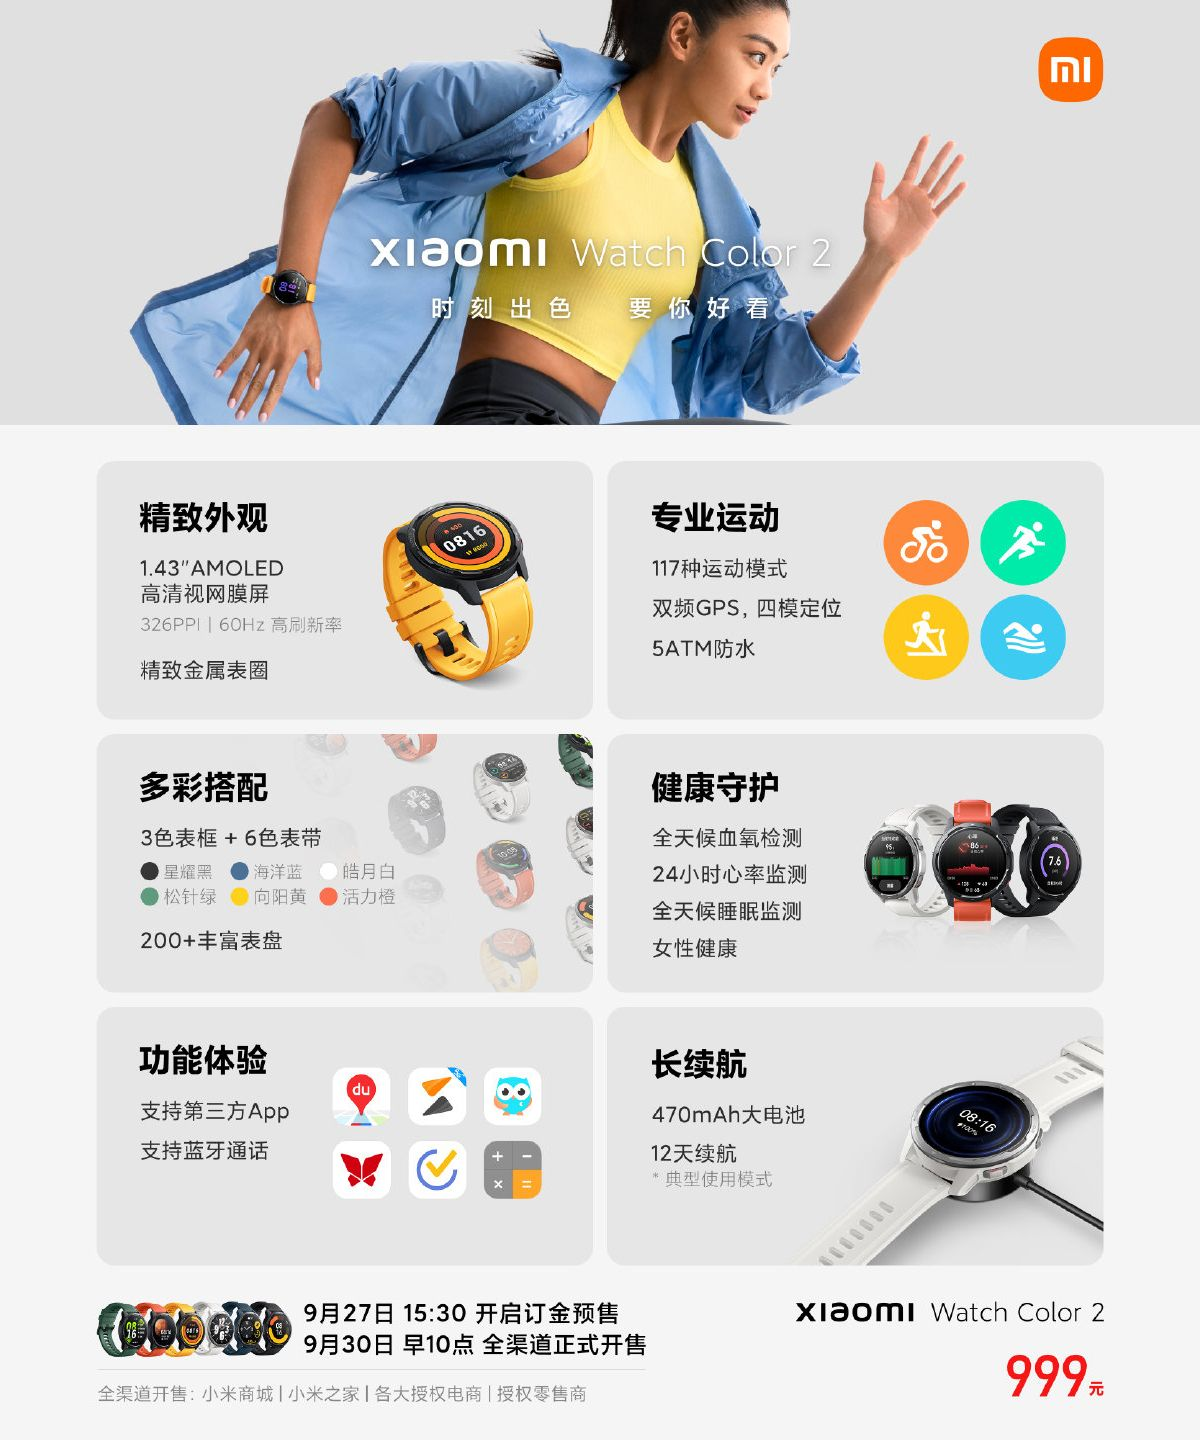 xiaomi-watch-color-2-chine